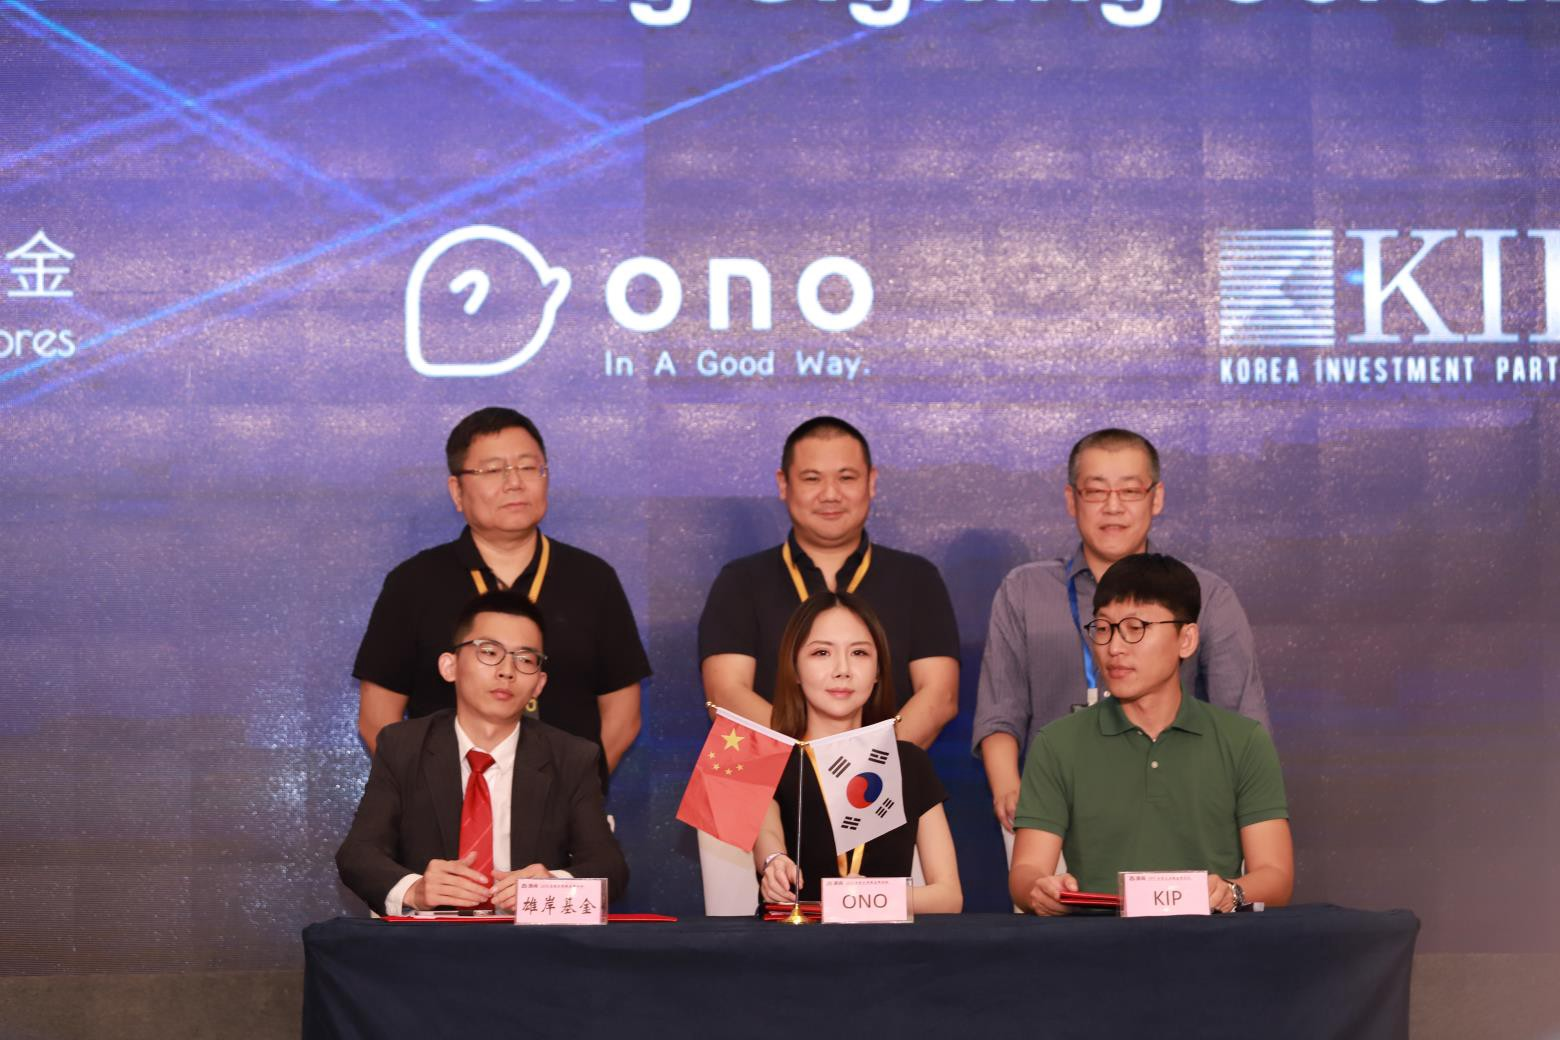 /ono-announces-16-million-in-series-a-funding-from-traditional-blockchain-vc-funds-d5b6e9ed5c87 feature image